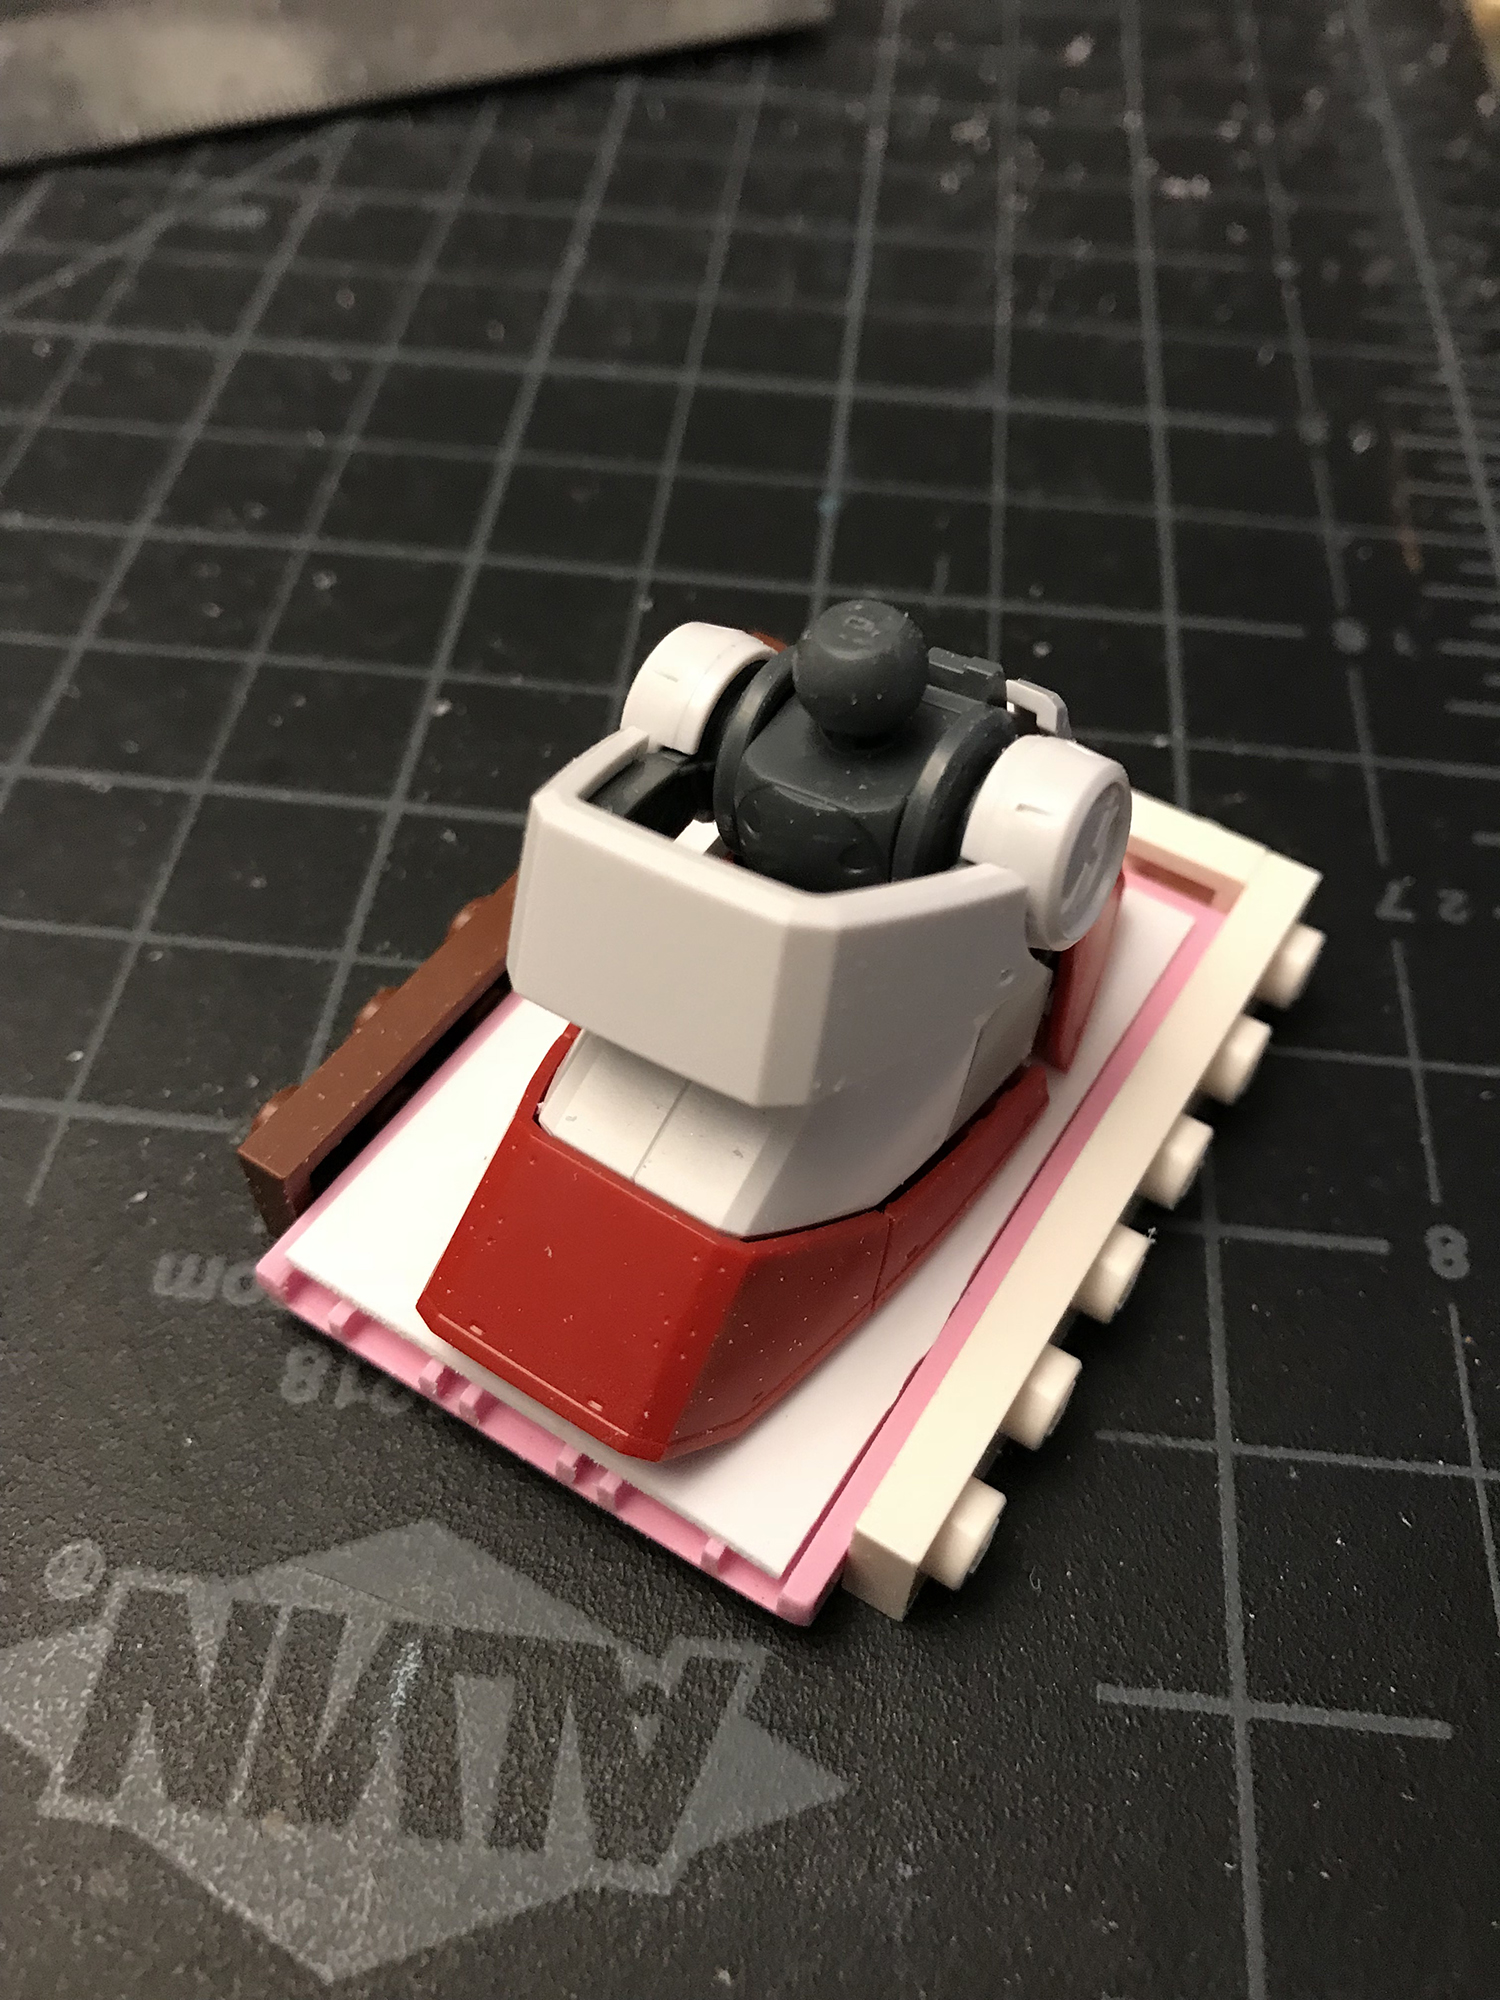 BEING RESOURCEFUL - Modifying Lego pieces and scratch-building